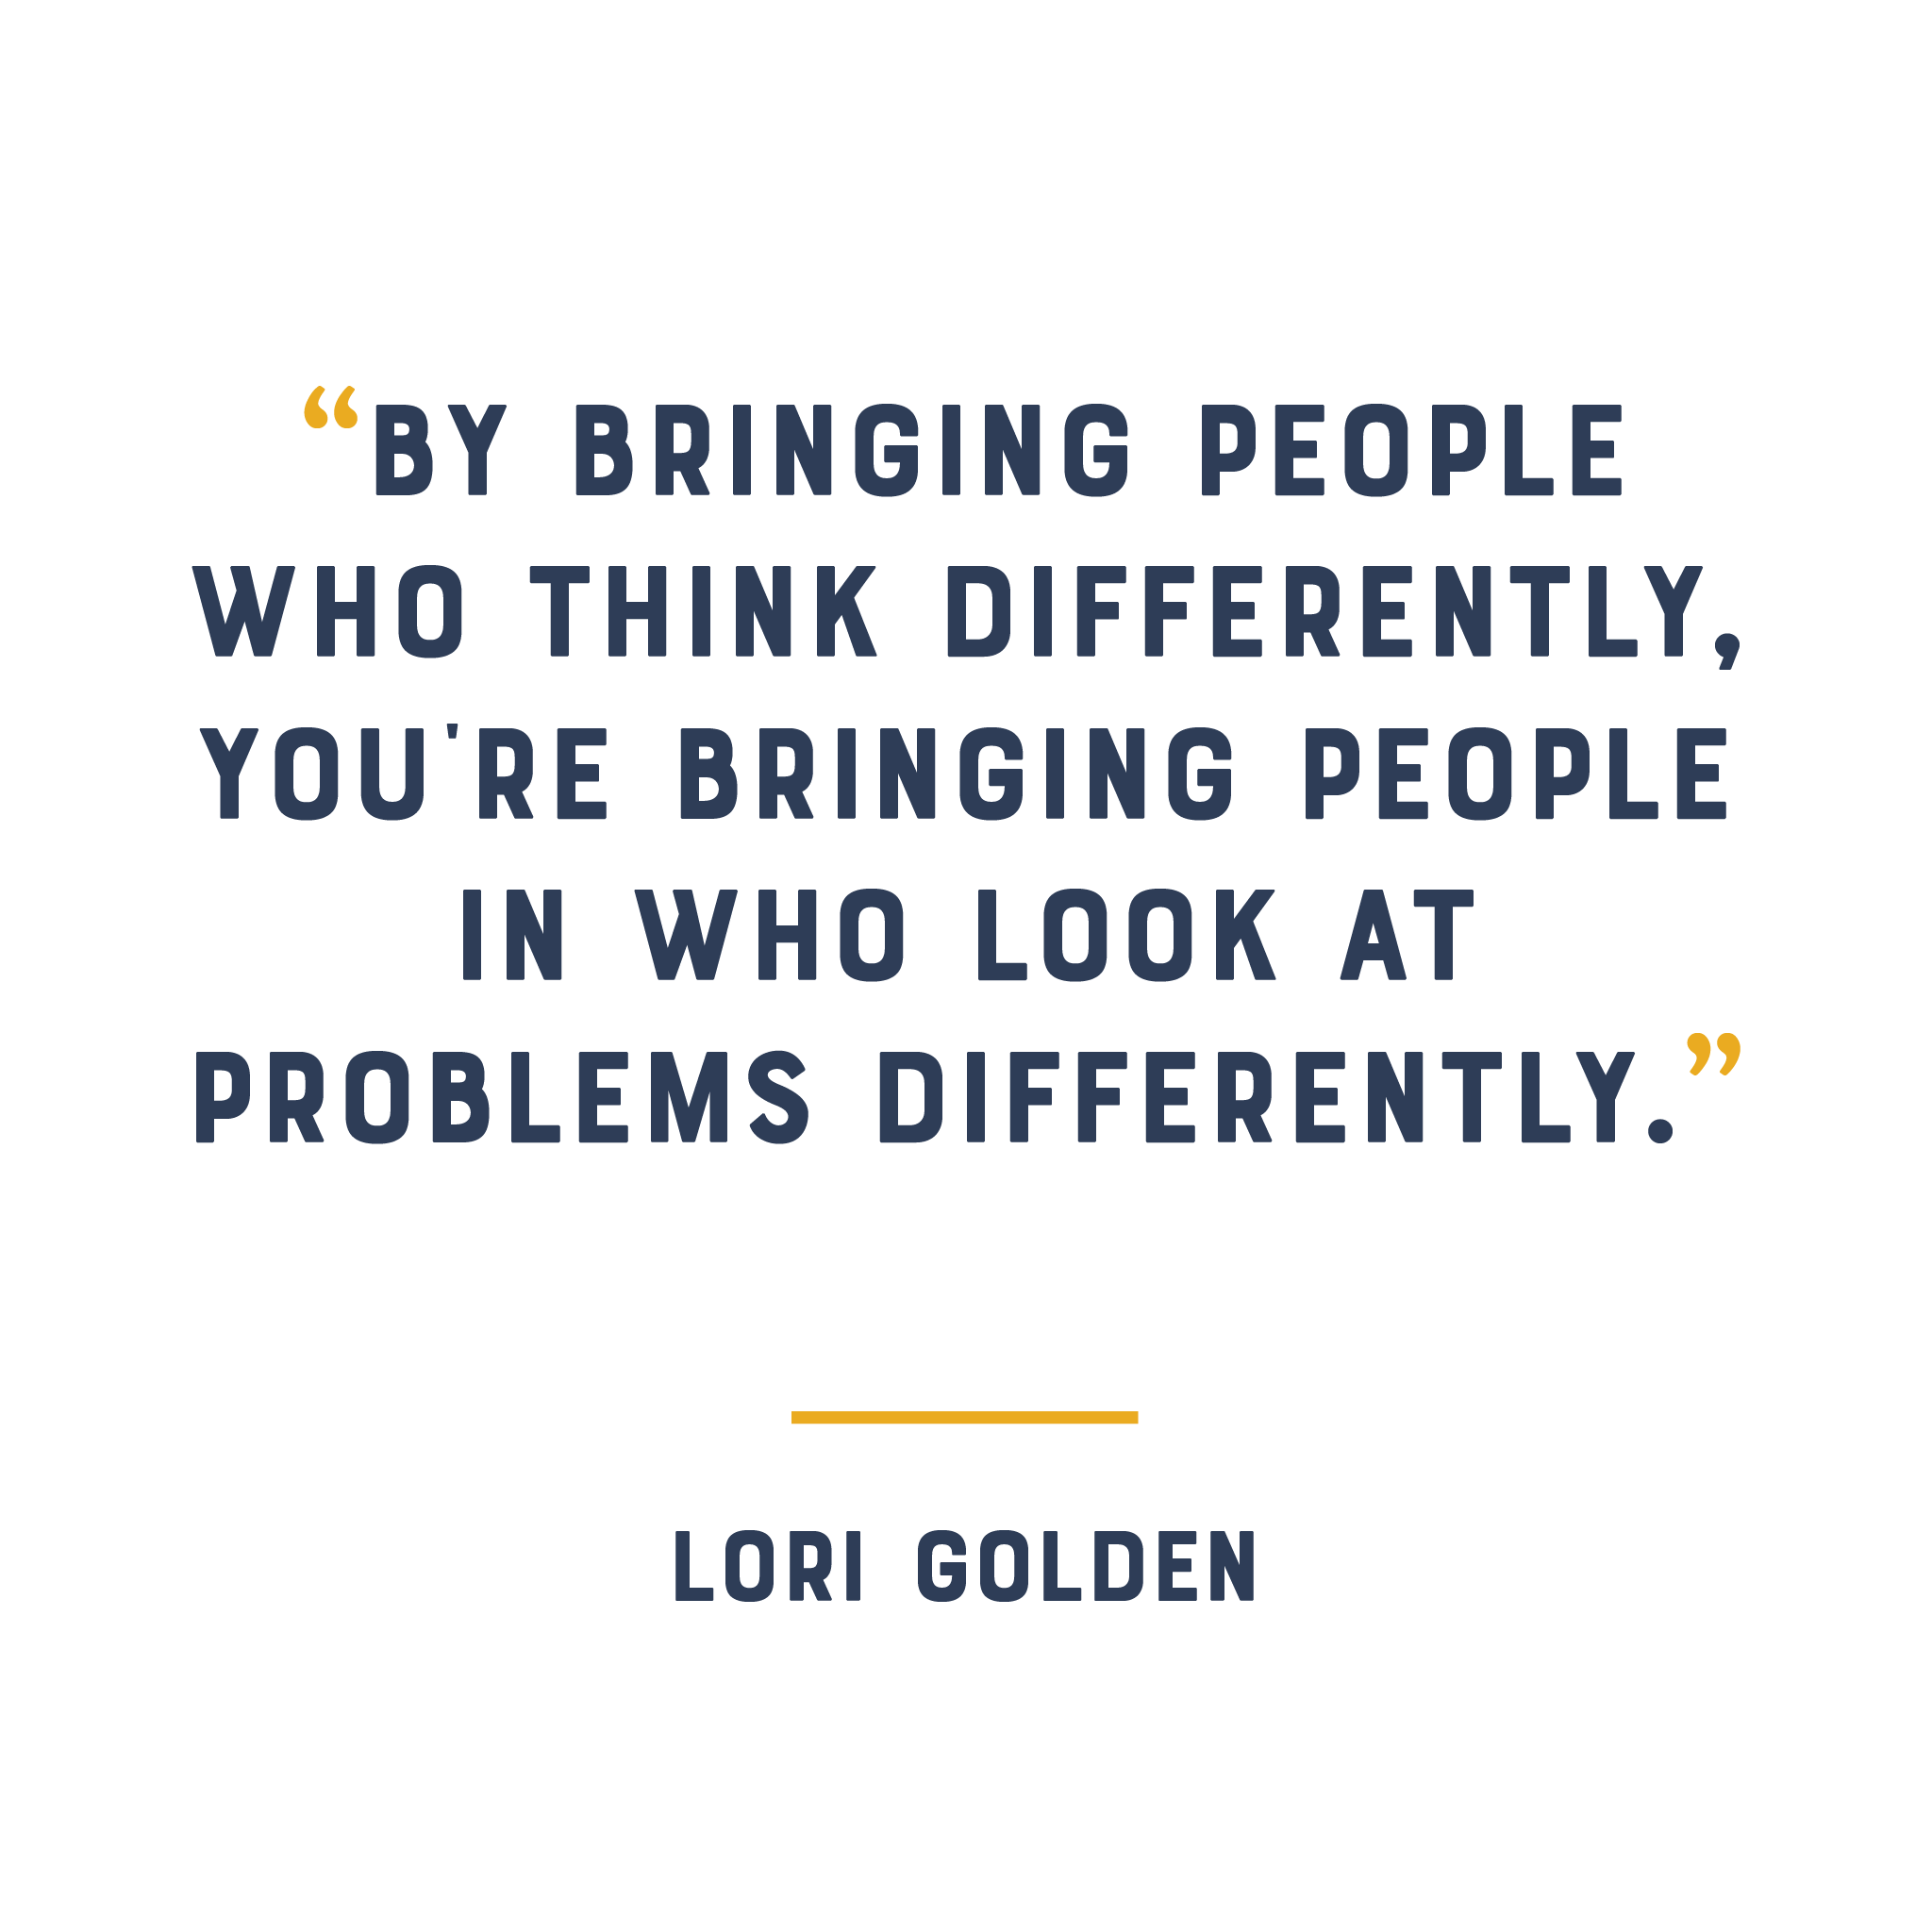 """By bringing people who think differently, you're bringing people in who look at problems differently."" - Lori Golden"